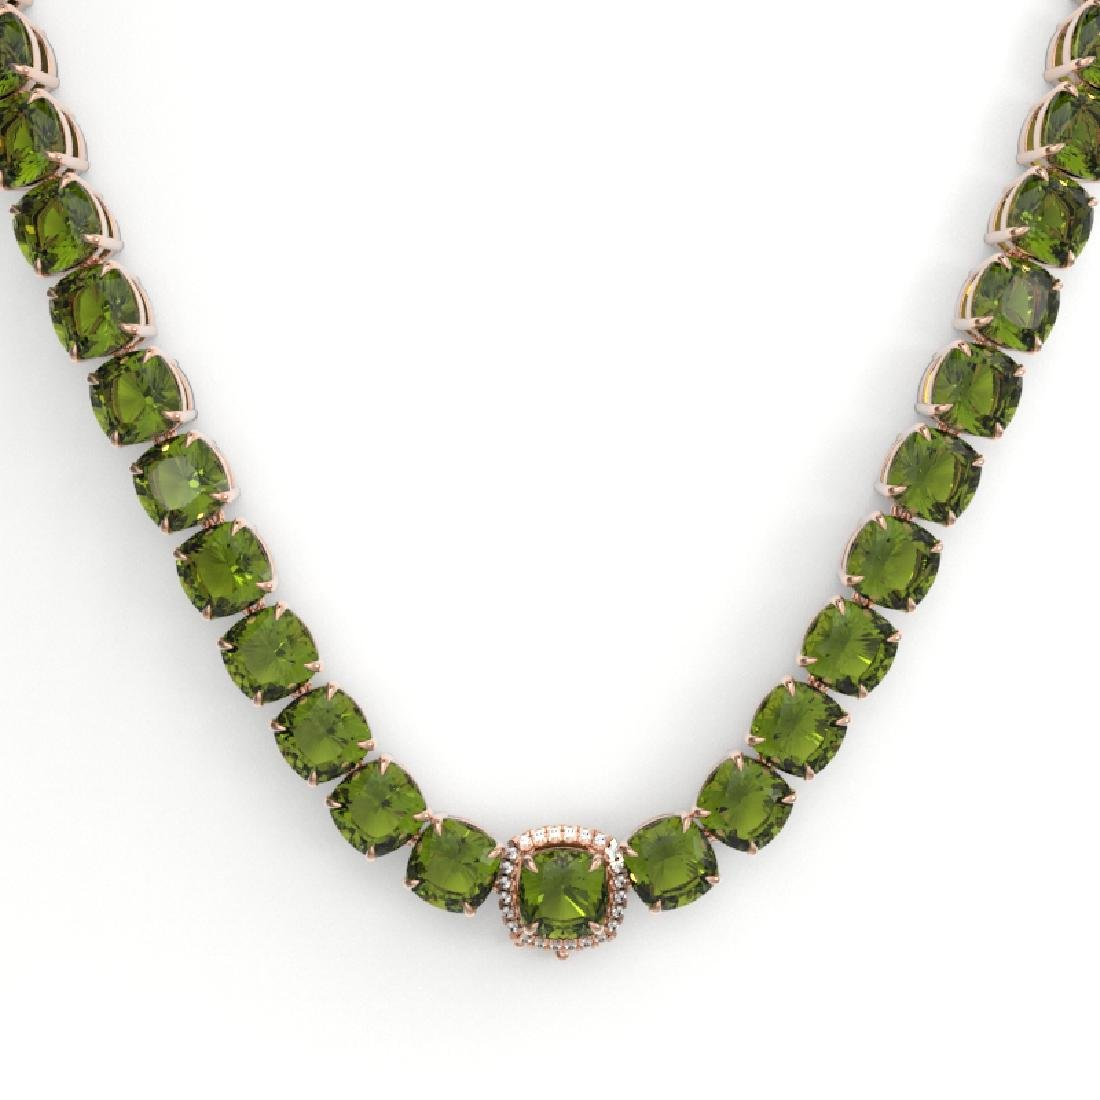 100 CTW Green Tourmaline & VS/SI Diamond Necklace 14K - 2